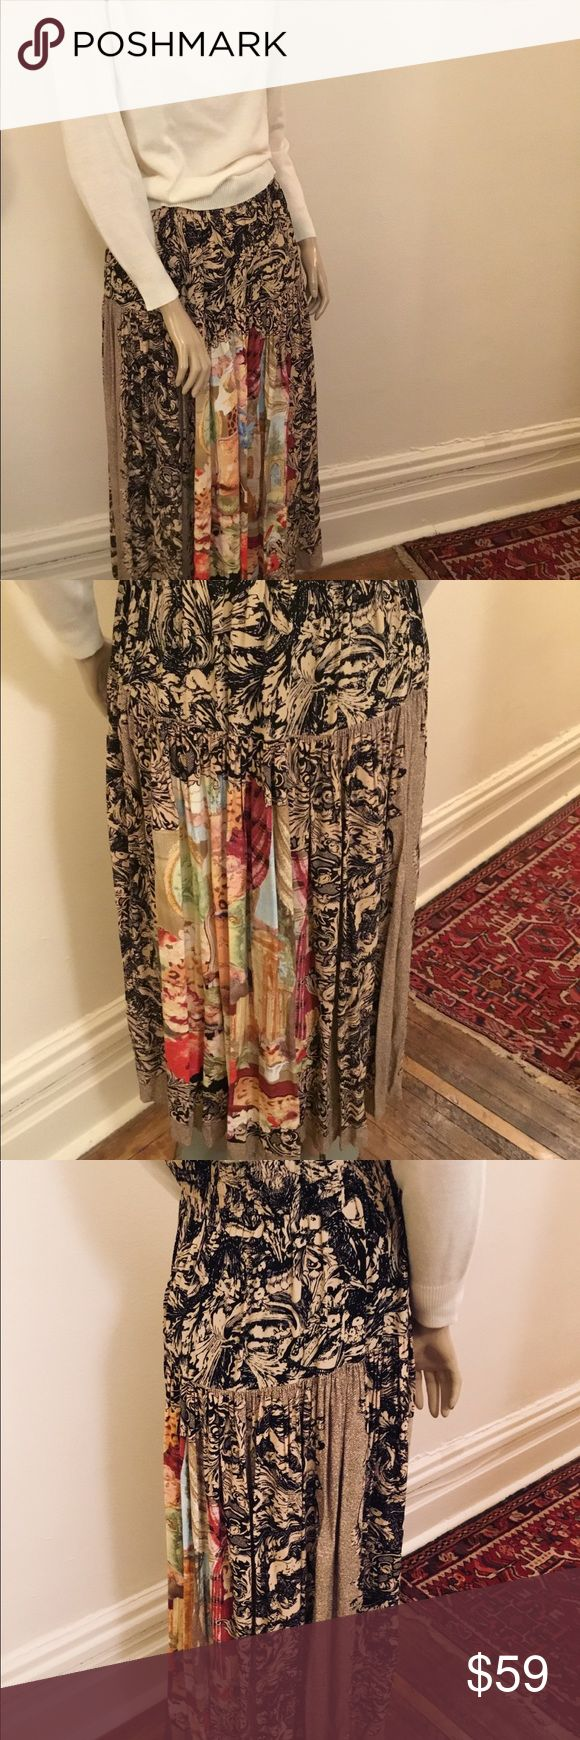 Designer skirt by Carole Little, Baroque theme This is a fabulous graphic print maxi skirt by Carole Little that features panels of highly ornate scenes of architecture and extravagant Baroque designs. It has a wide elastic waist band and a dropped fitted hip.  The fabric is a rayon blend. Size 8 or check the measurements below. Vintage Skirts Maxi